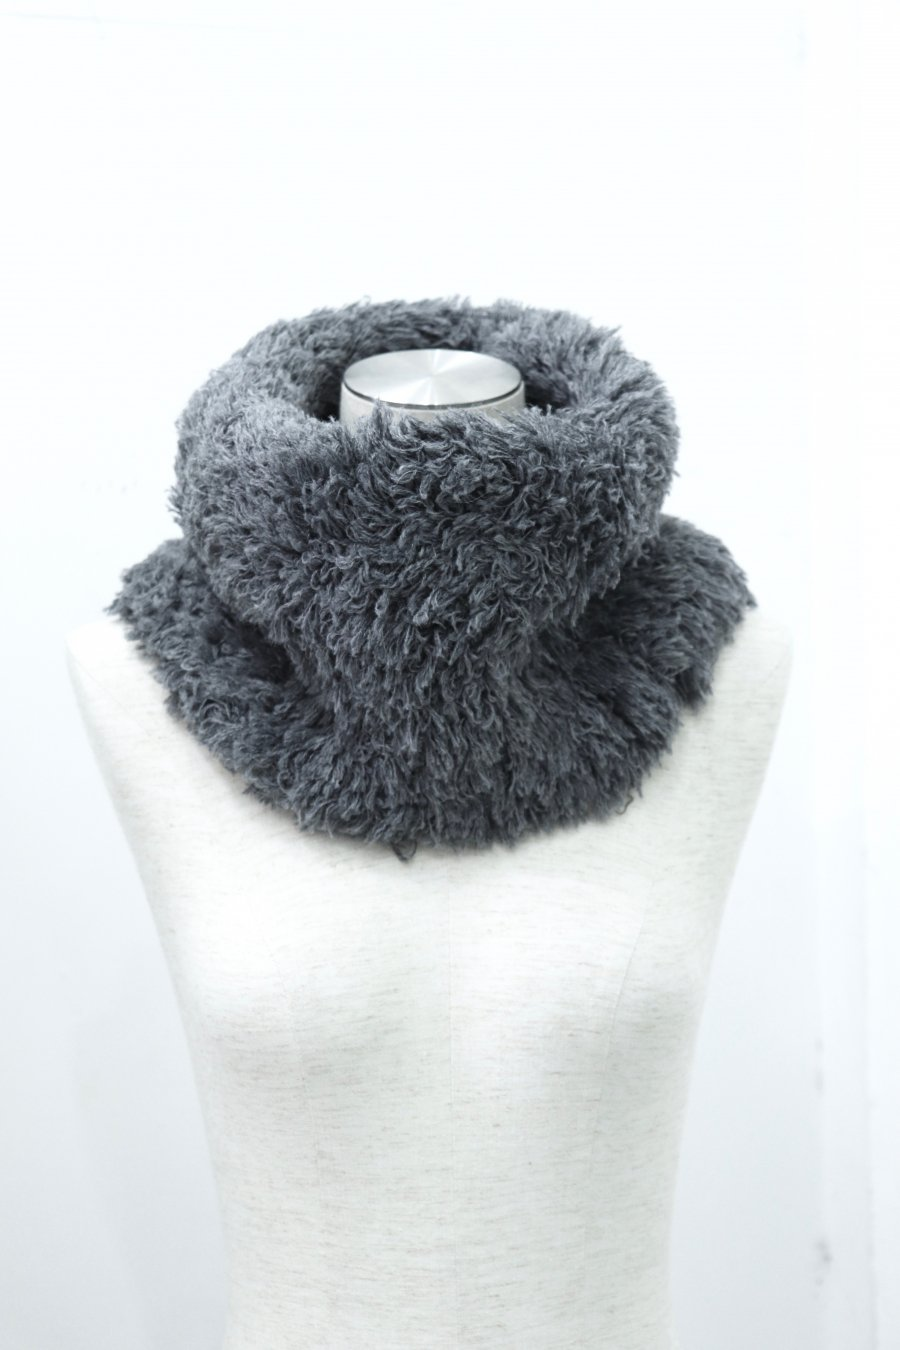 LITTLEBIG  SNOOD(GRAY)<img class='new_mark_img2' src='https://img.shop-pro.jp/img/new/icons15.gif' style='border:none;display:inline;margin:0px;padding:0px;width:auto;' />